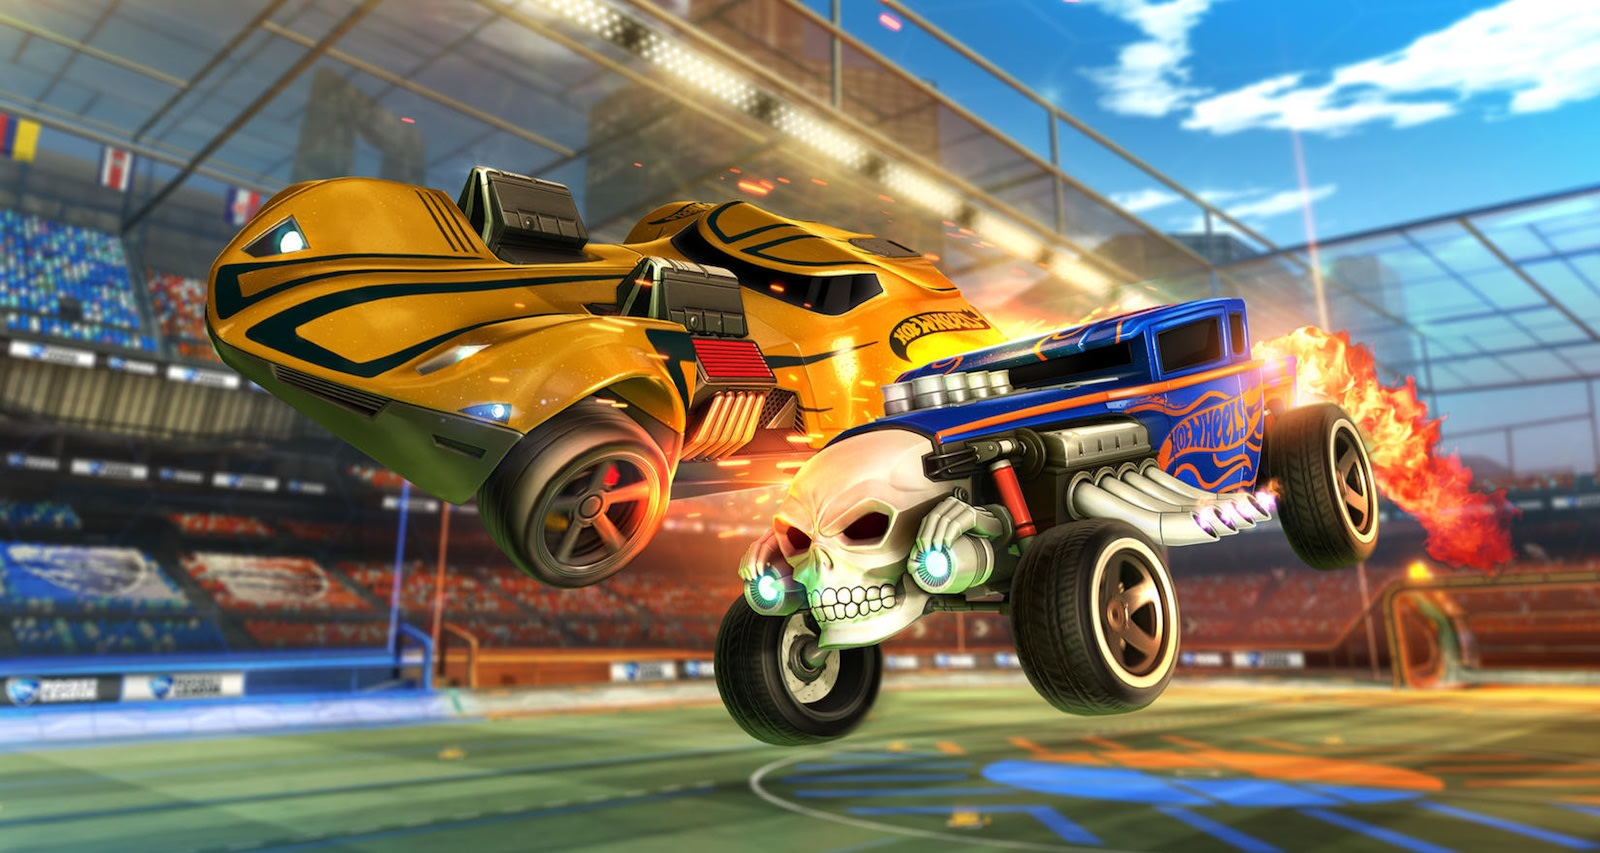 Classic Hot Wheels cars are coming to \'Rocket League\'